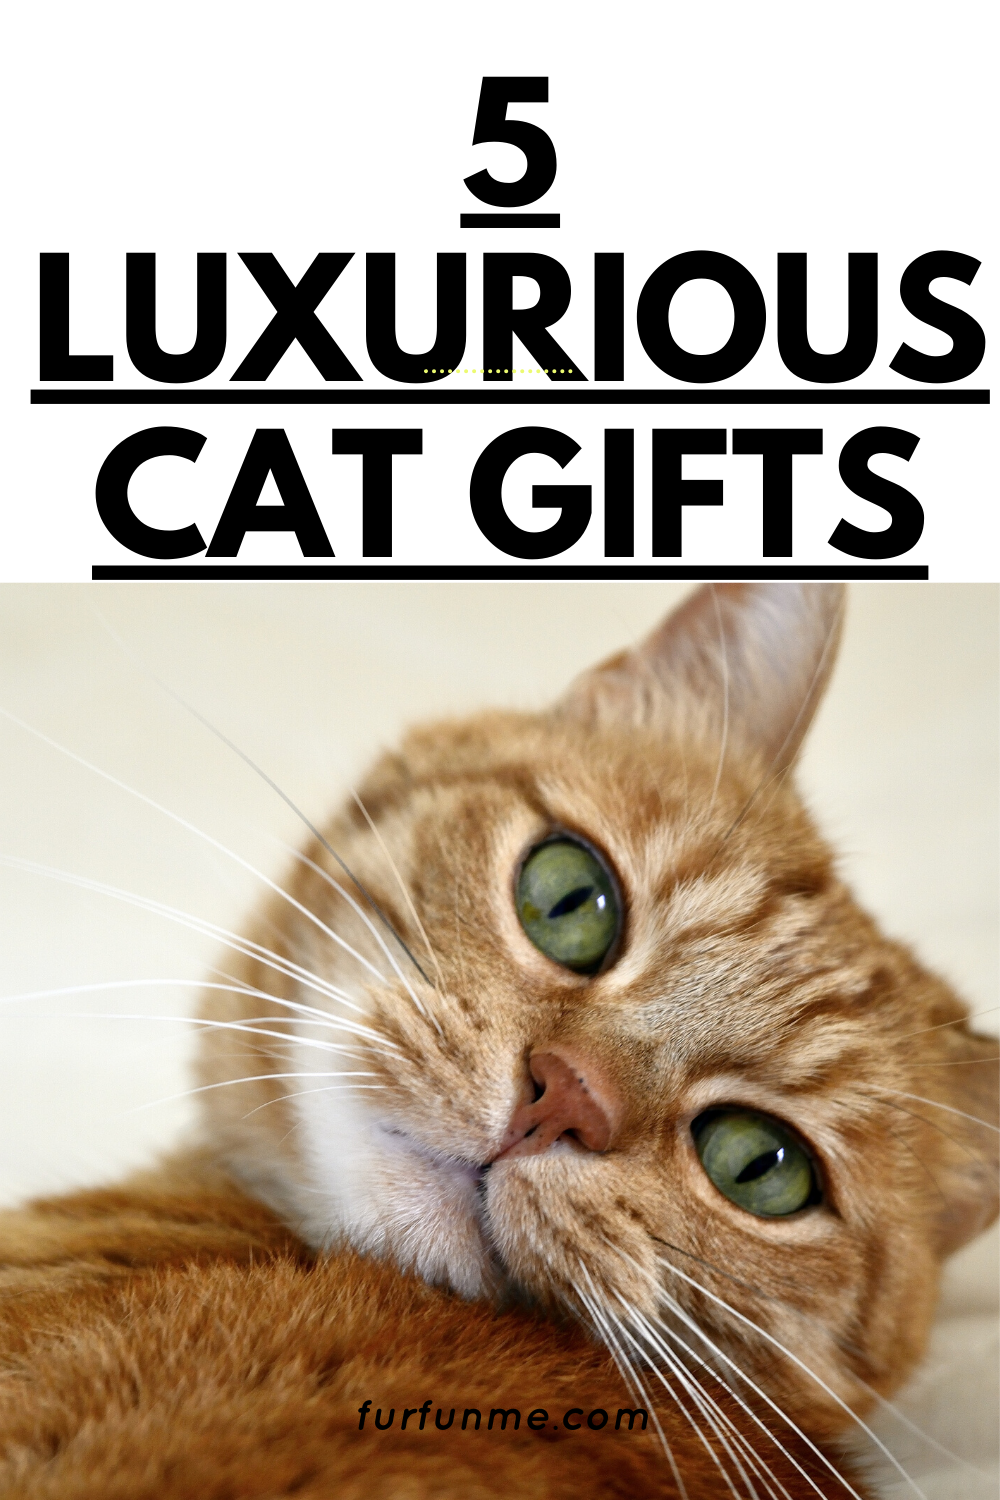 Luxury Gifts For Your Cat In 2020 Cat Illnesses Cat Remedies Cat Ailments